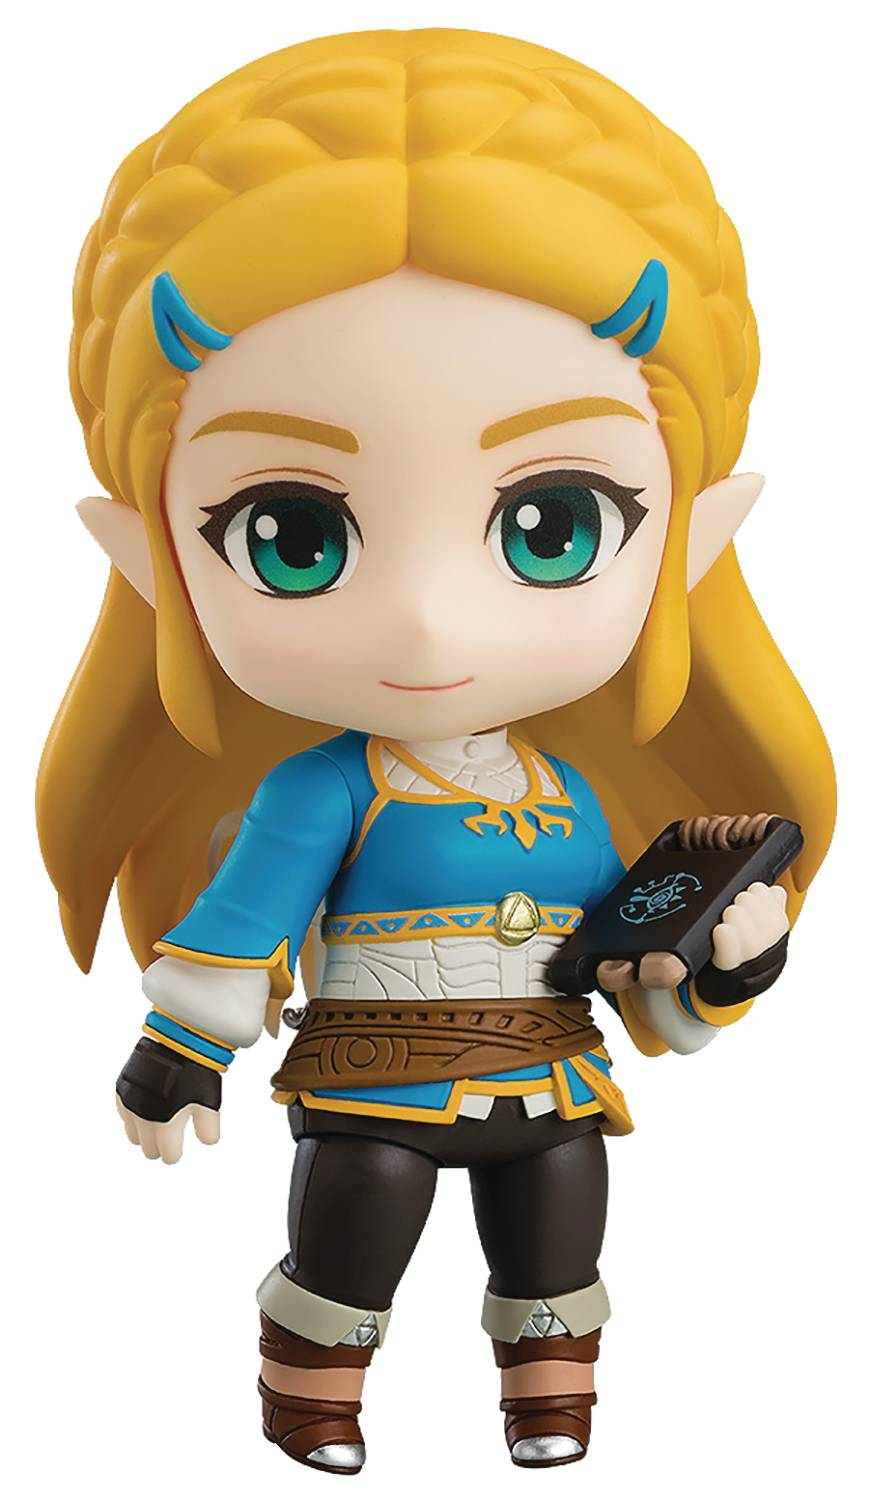 LOZ BREATH OF THE WILD ZELDA NENDOROID AF